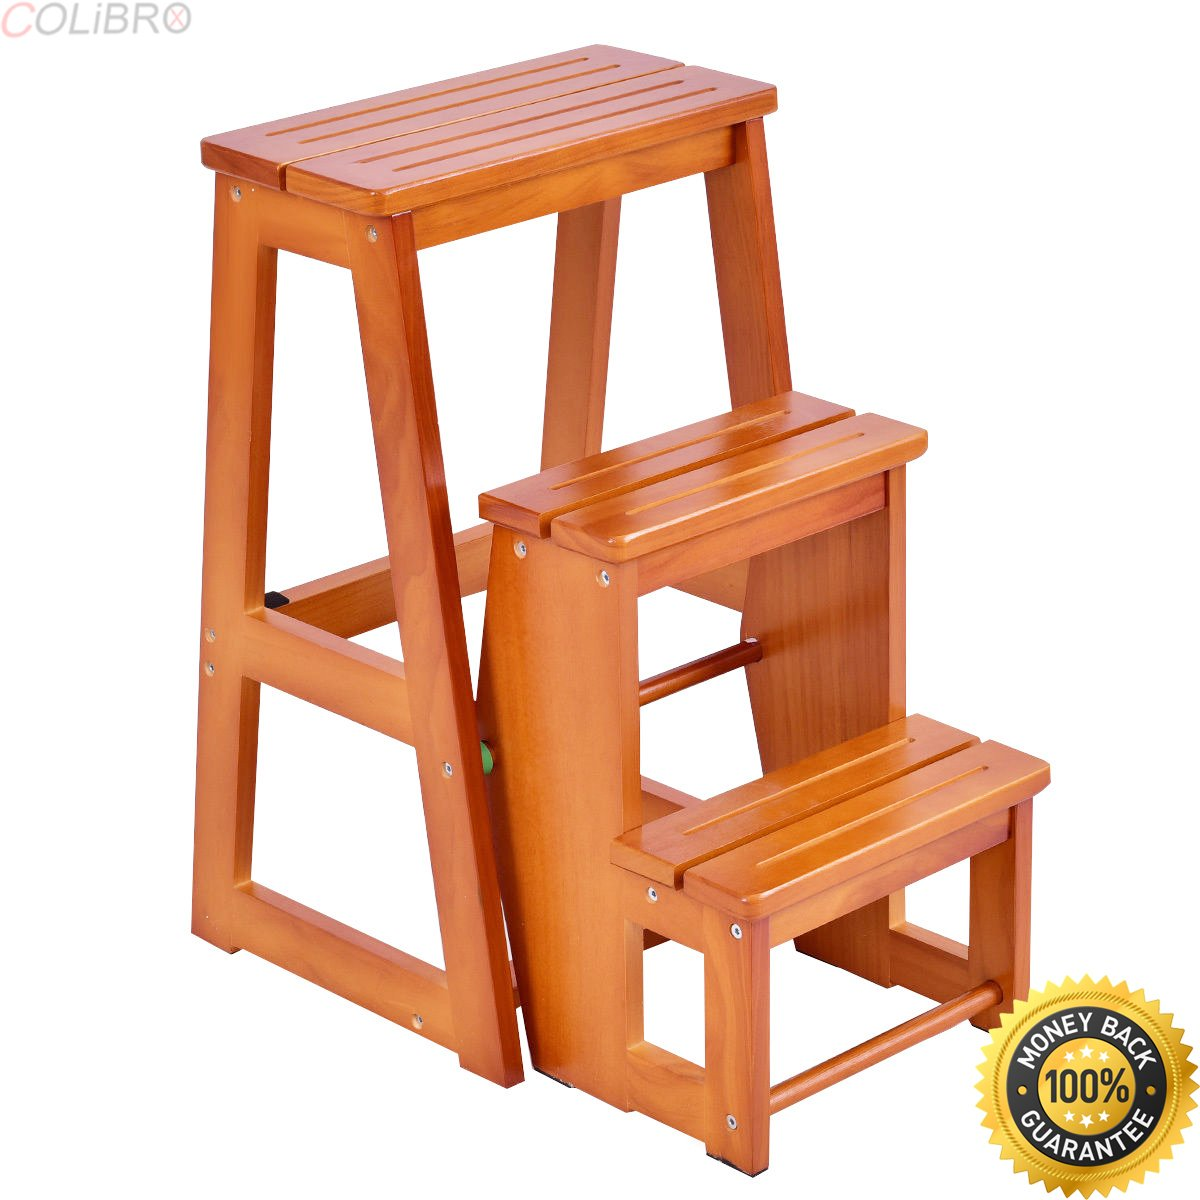 Surprising Colibrox Wood Step Stool Folding 3 Tier Ladder Chair Bench Seat Utility Multi Functional Chair Bench For Sale Wooden Step Stools For The Kitchen Best Image Libraries Thycampuscom